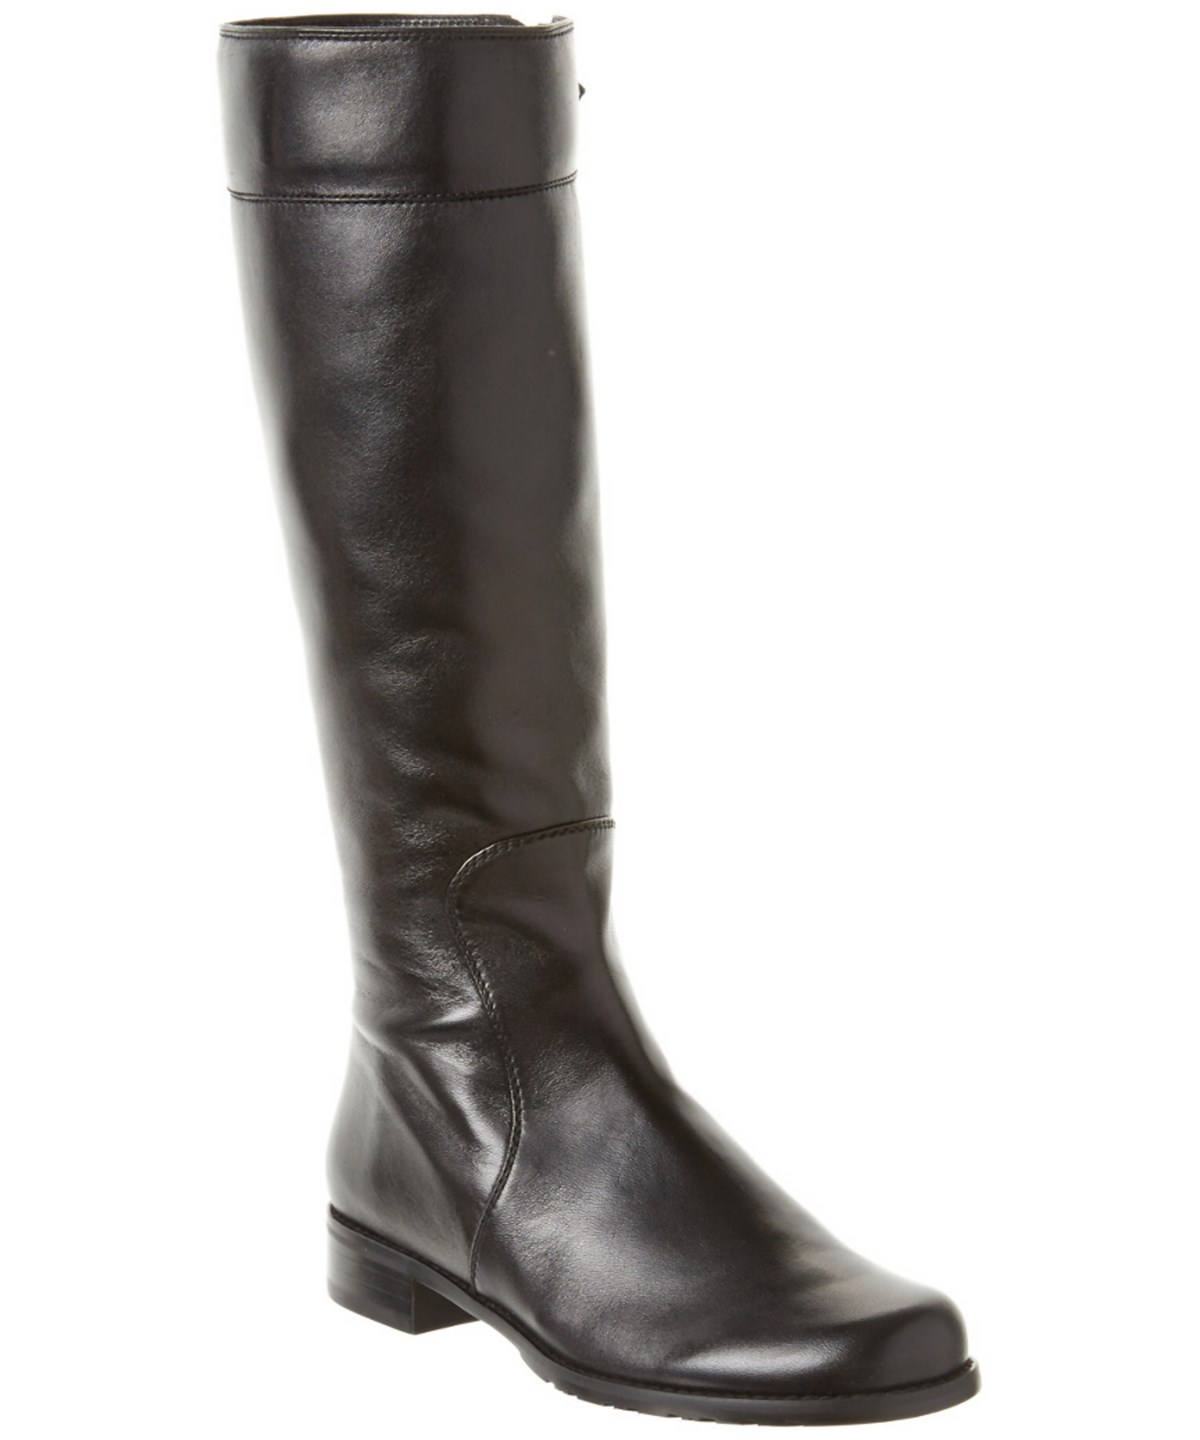 Stuart Weitzman Traveler Leather Boot In Black